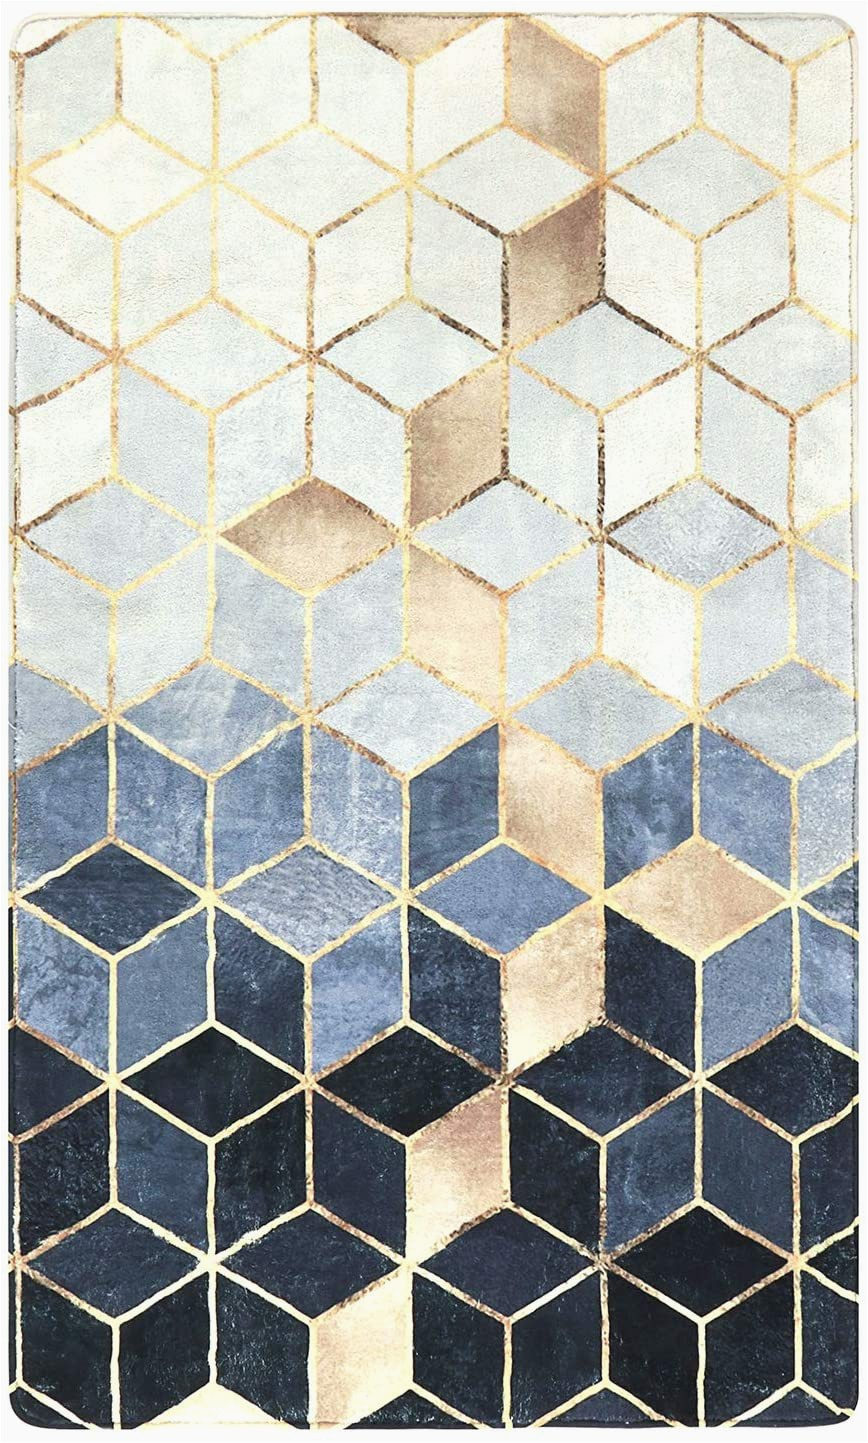 3×5 Non Slip area Rugs Lahome Gra Nt Cubes area Rug 3 X 5 Faux Wool Non Slip area Rug Accent Distressed Throw Rugs Floor Carpet for Living Room Bedrooms Laundry Room